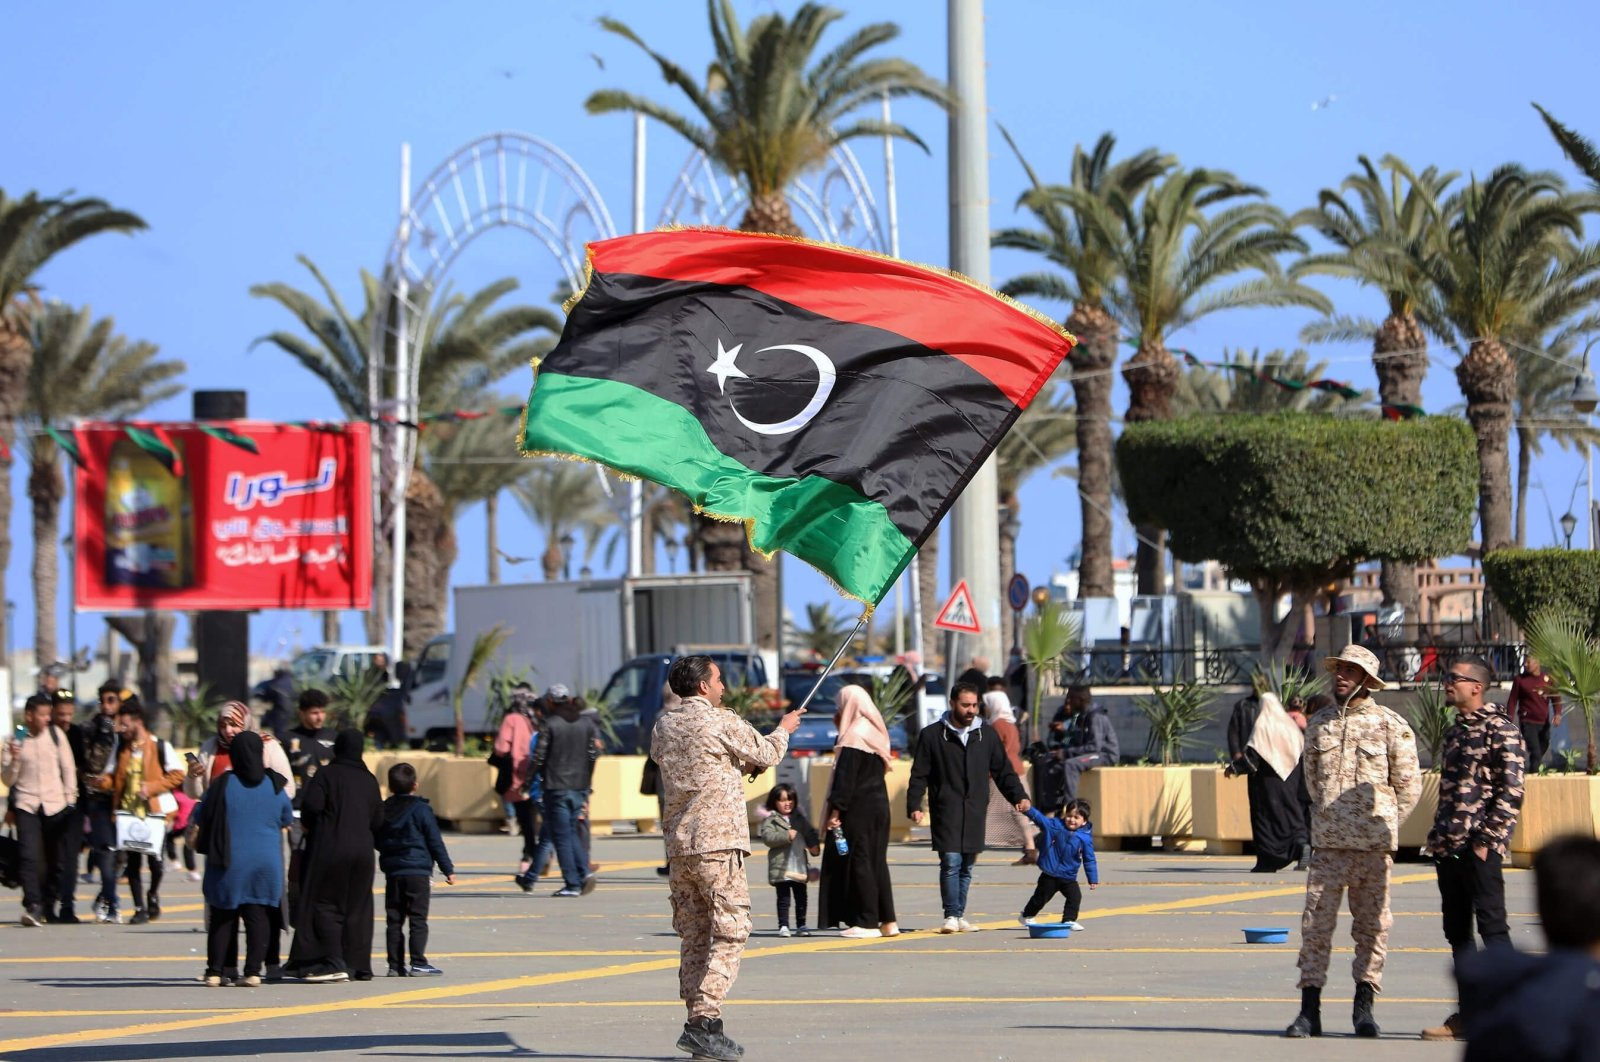 A soldier waves the Libyan flag a day ahead of the 10th anniversary of the country's Arab Spring uprising in Martyrs' Square, Tripoli, Libya, Feb. 16, 2021. (AA Photo)